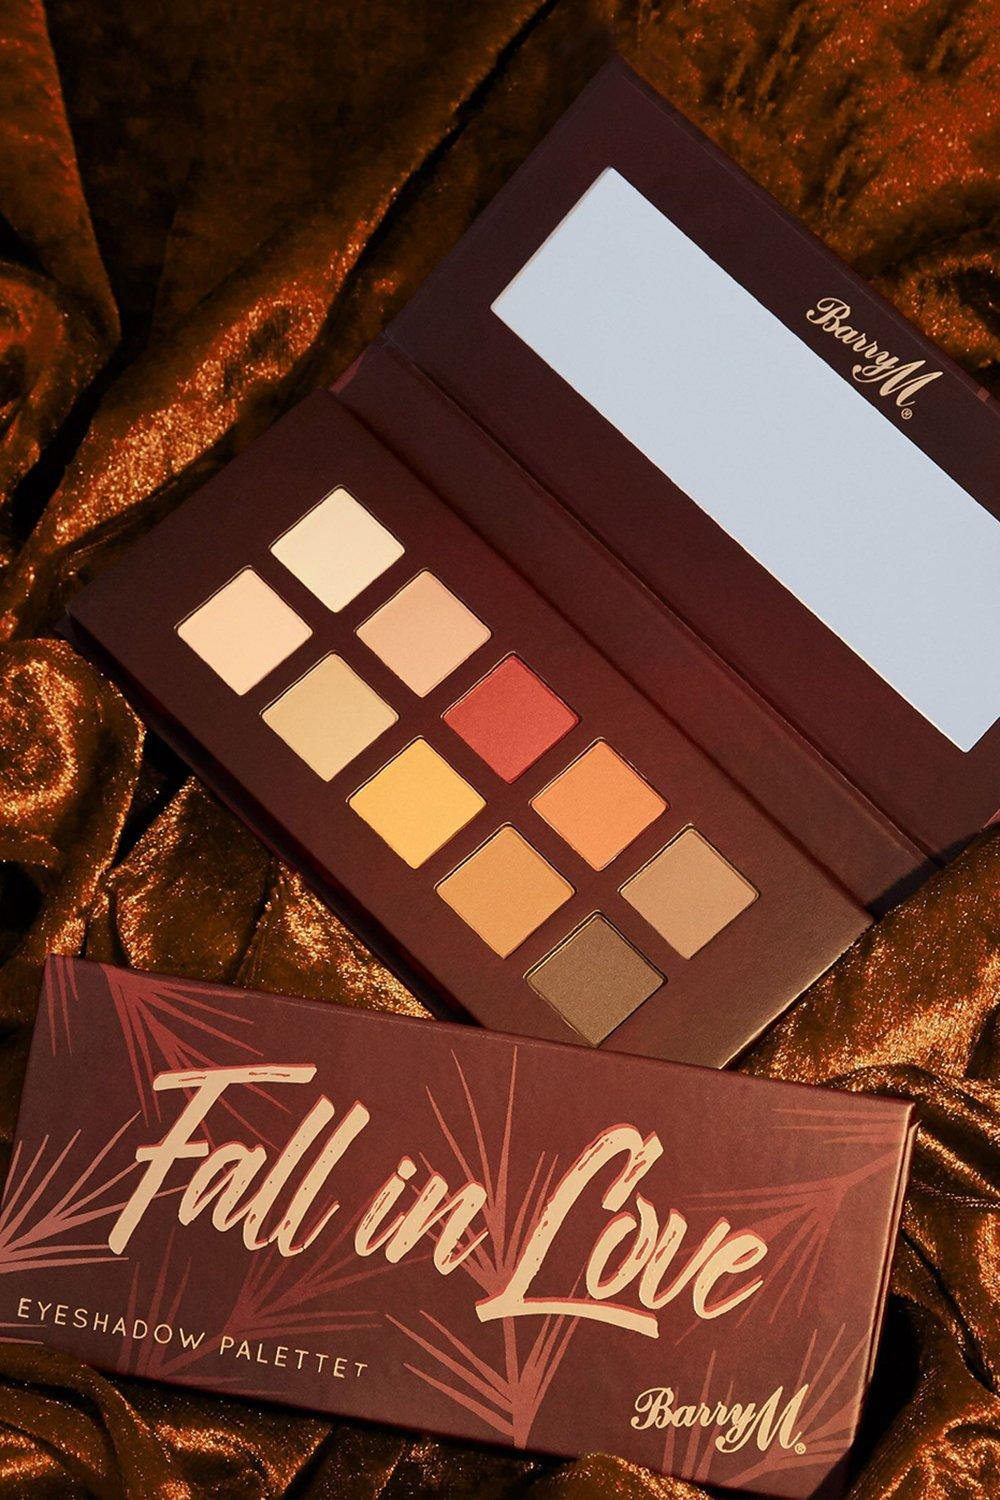 Barry M Womens Barry M Fall In Love Eyeshadow Palette - Brown - One Size, Brown